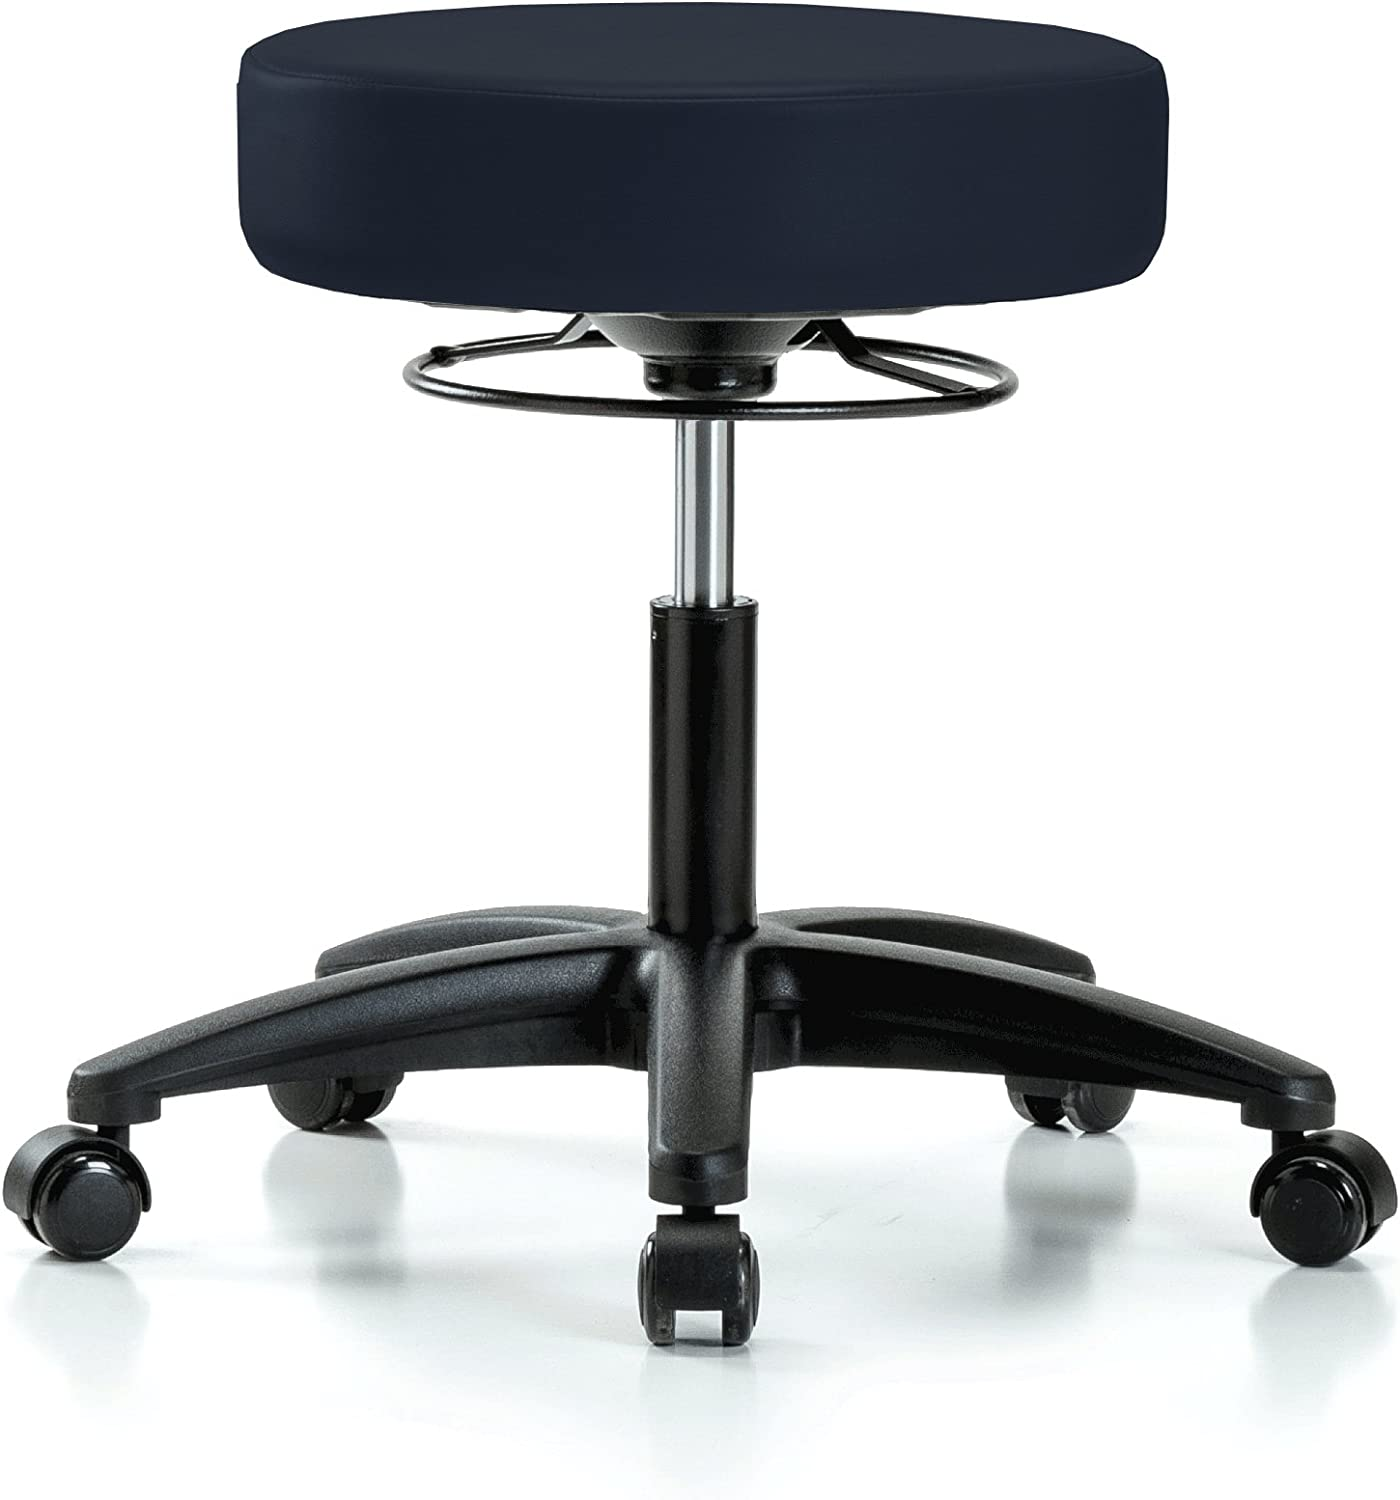 Perch 360 Degree Rolling Height Adjustable Massage Therapy Swivel Stool for Carpet or Linoleum Desk Height 300-Pound Weight Capacity 12 Year Warranty Imperial Fabric